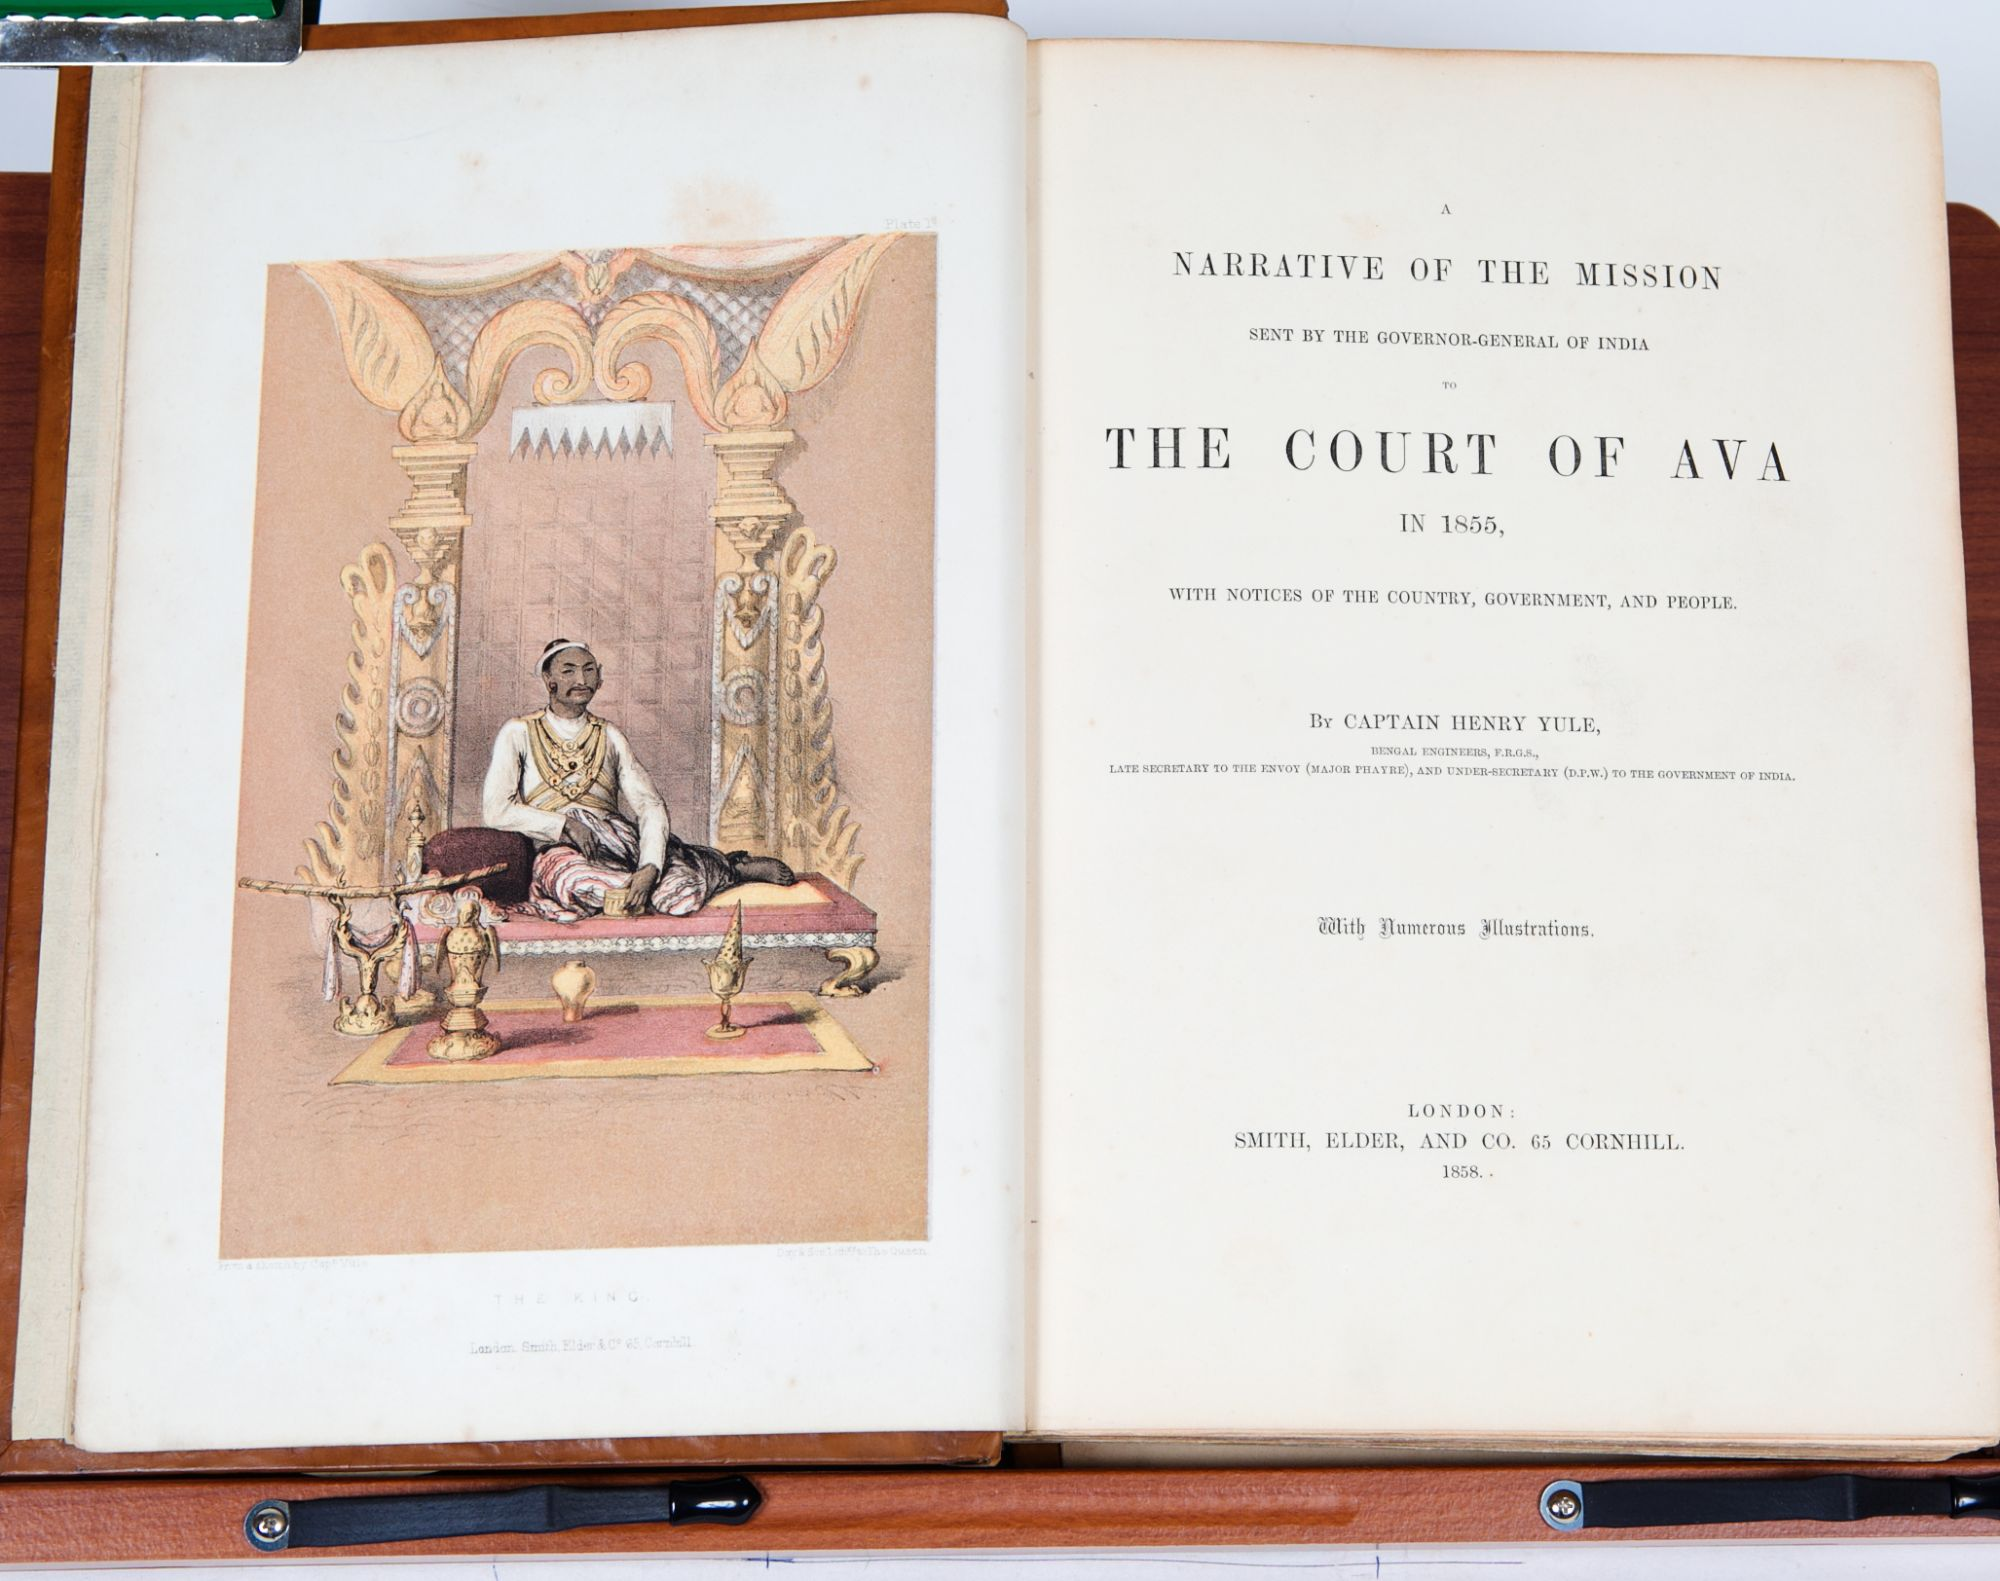 Narrative of the Mission sent by the governor general of India to the Court  of Ava in 1855 by Captain Henry Yule on Trophy Room Books